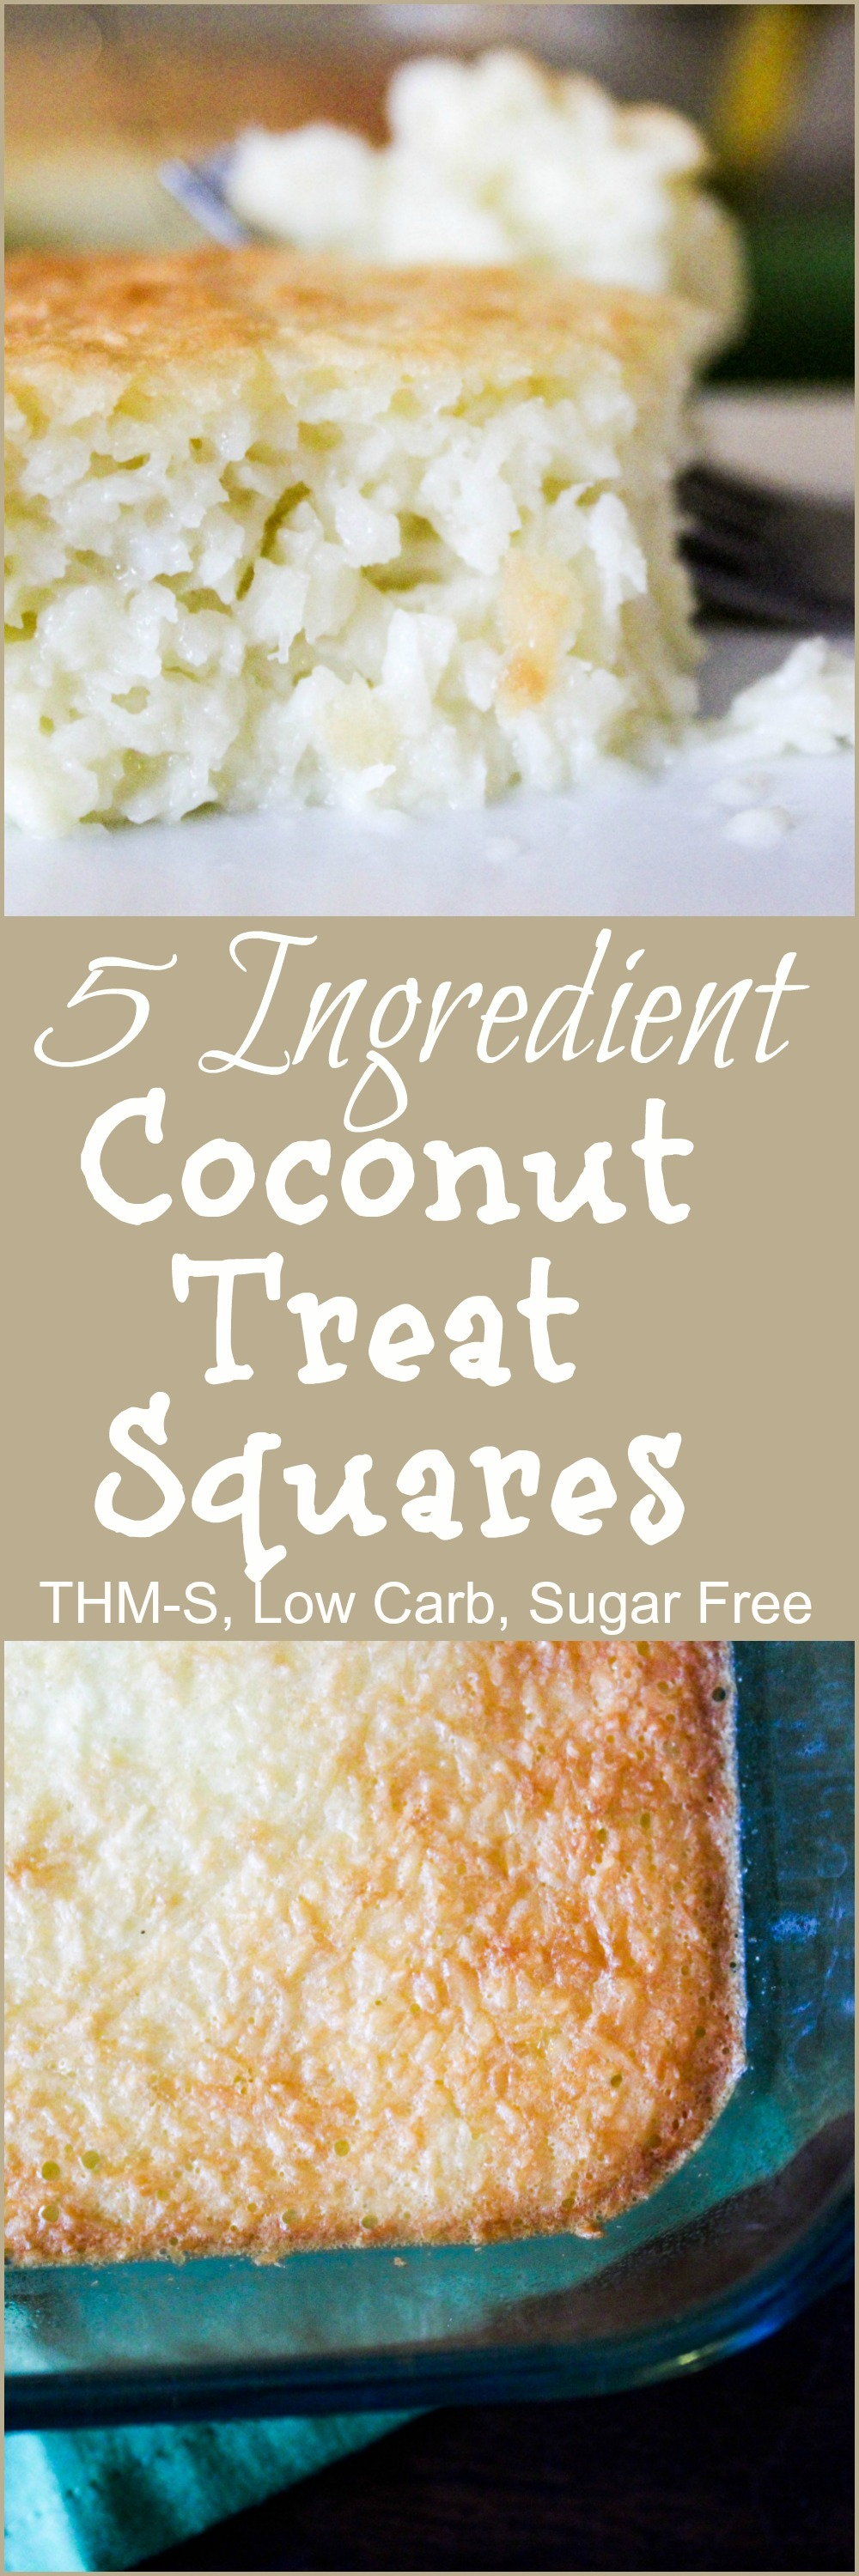 5 Ingredient Coconut Treat Squares {THM-S, Low Carb, Sugar Free ...